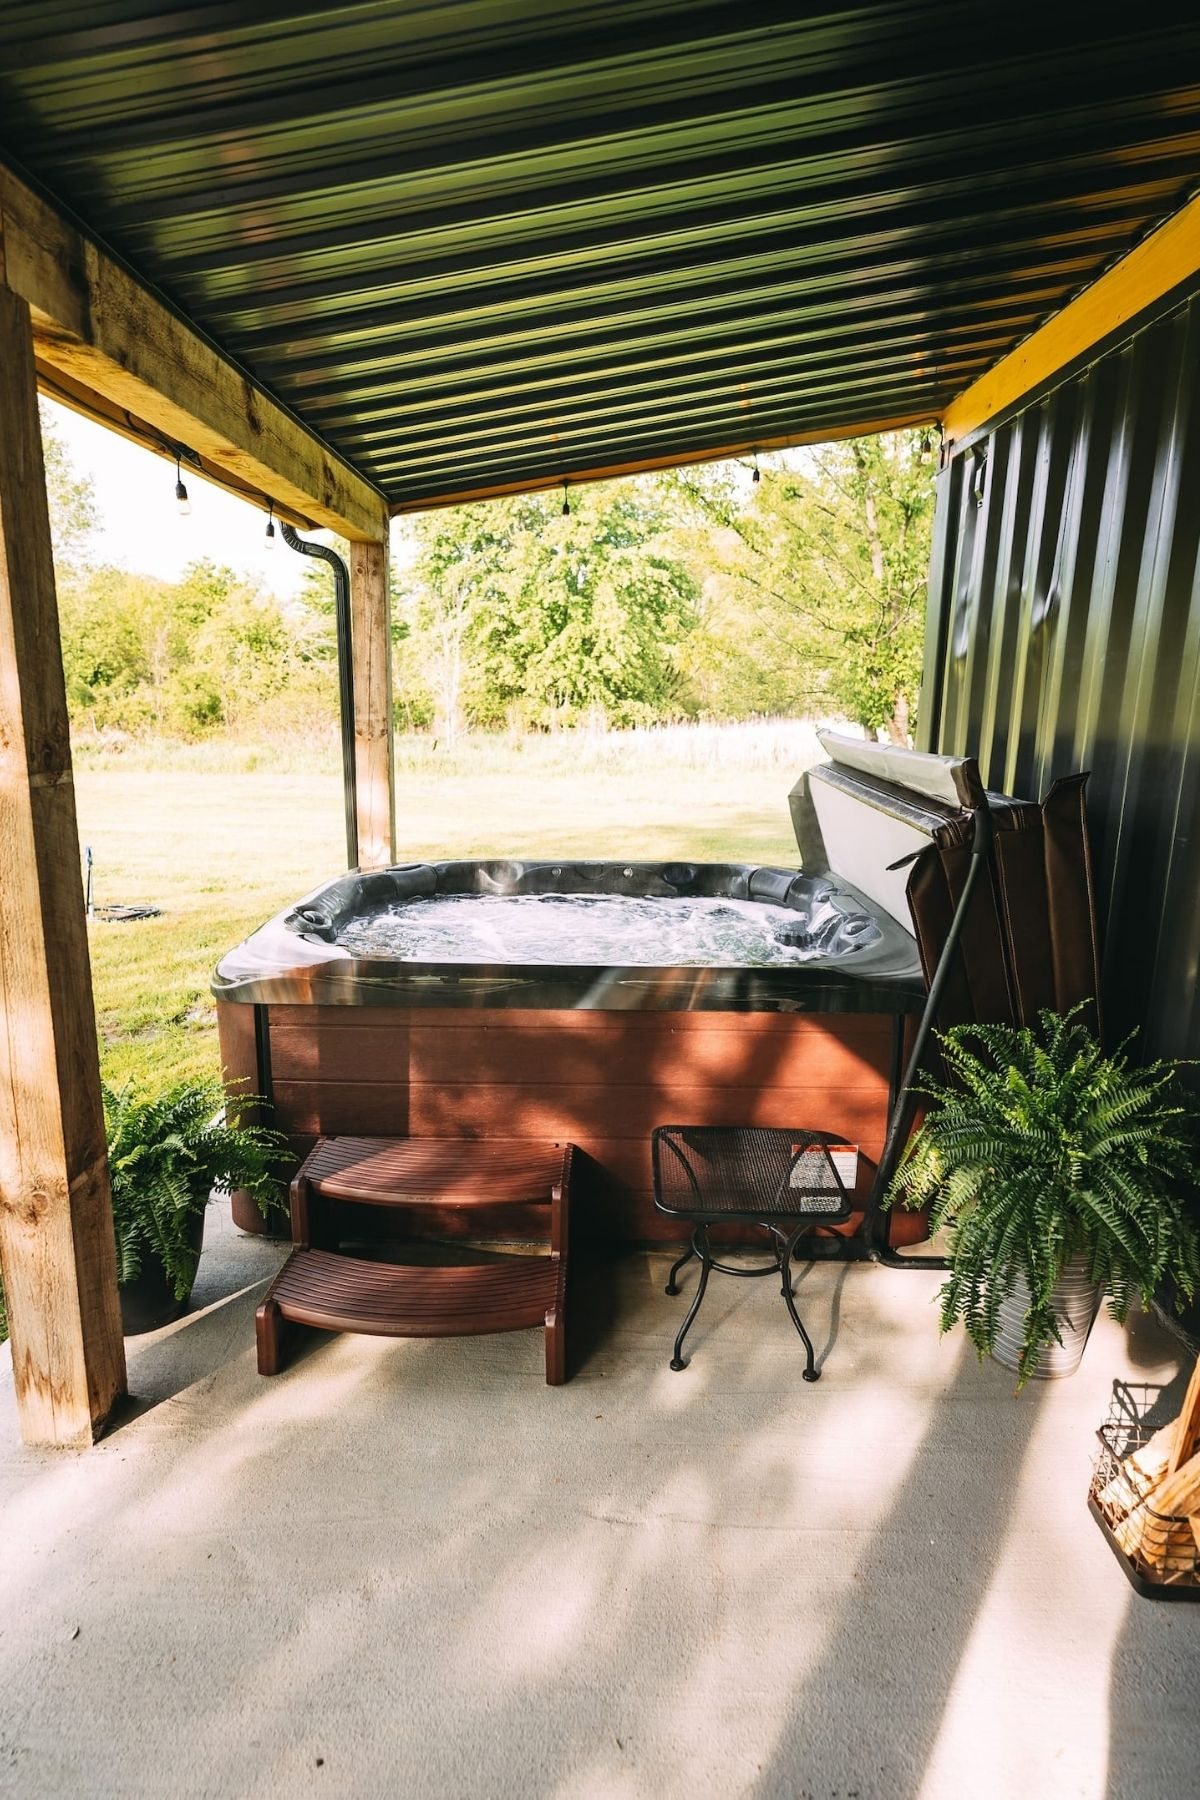 Hot tub on back porch of tiny cottage home